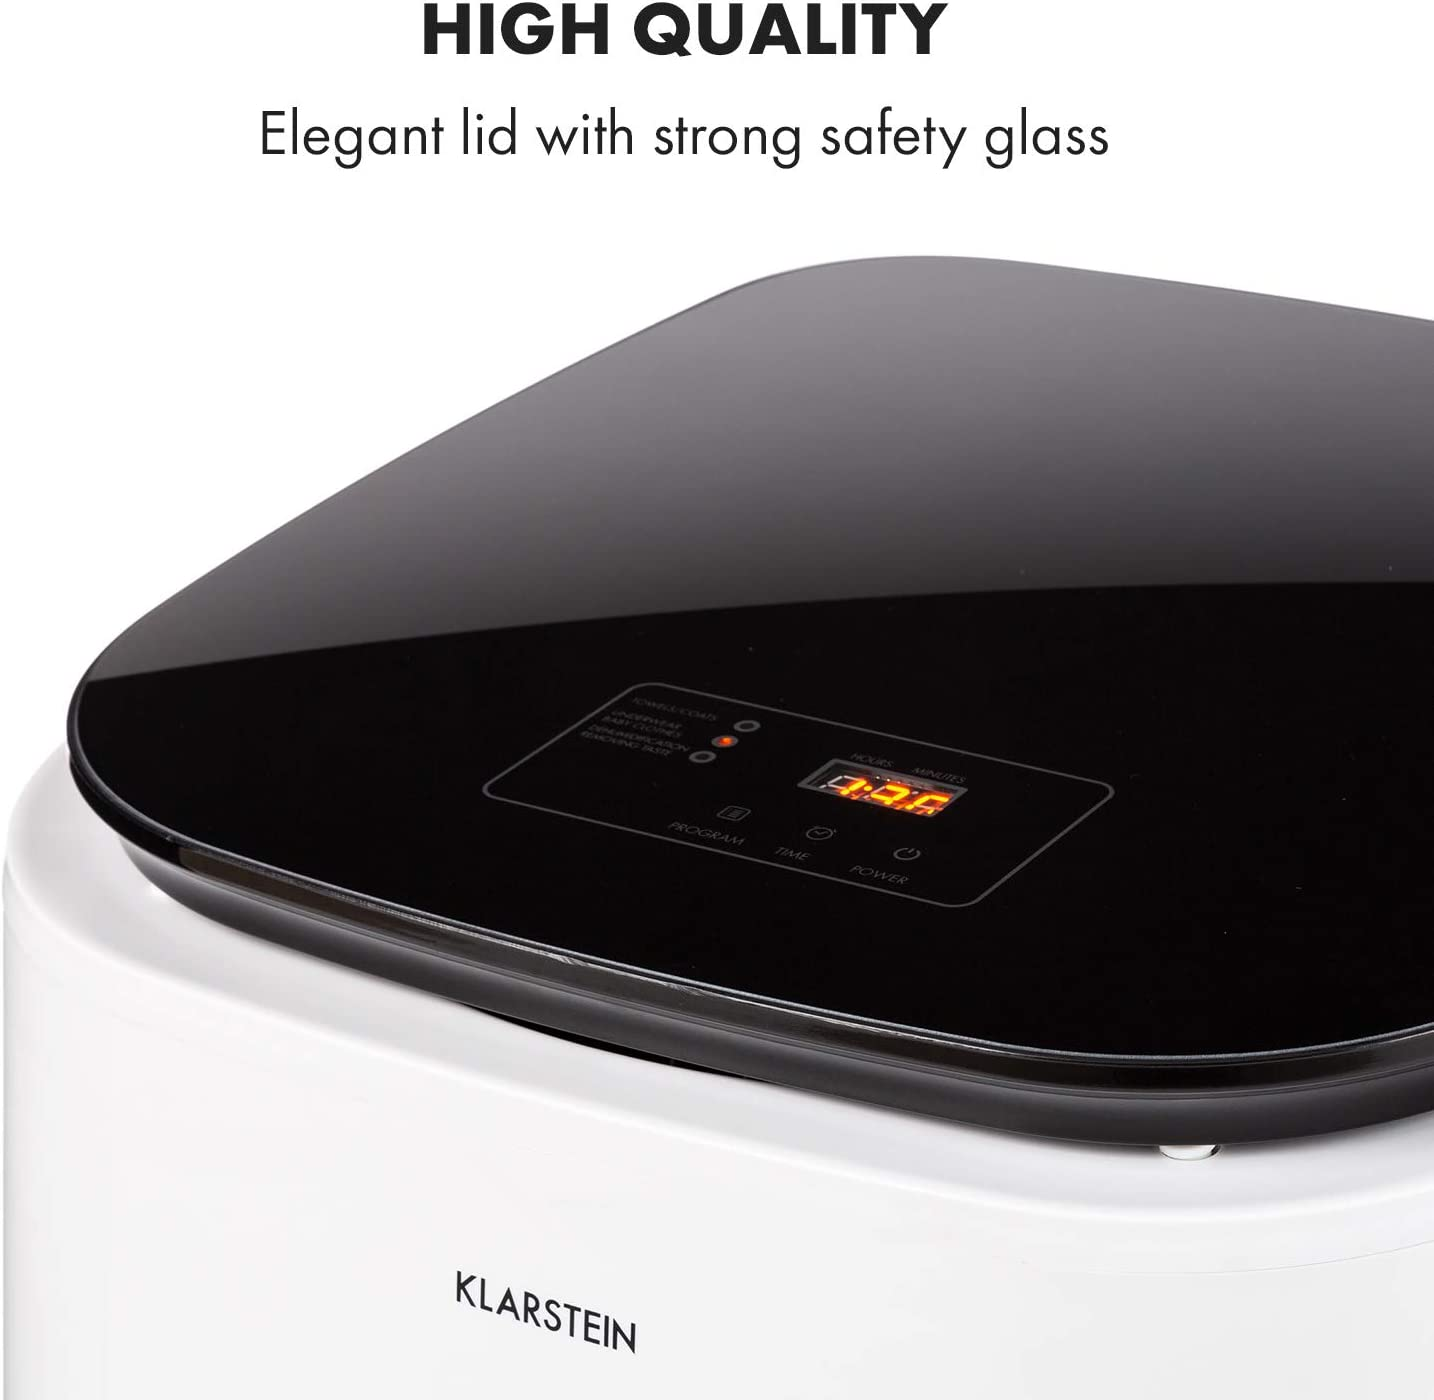 Stainless Steel Drum Touch Control Panel LED Display Safety Glass Lid Plastic Housing Klarstein Zap Dry Tumble Dryer 820 W Capacity: 50 L UniqueDry Design Small Footprint White//Black